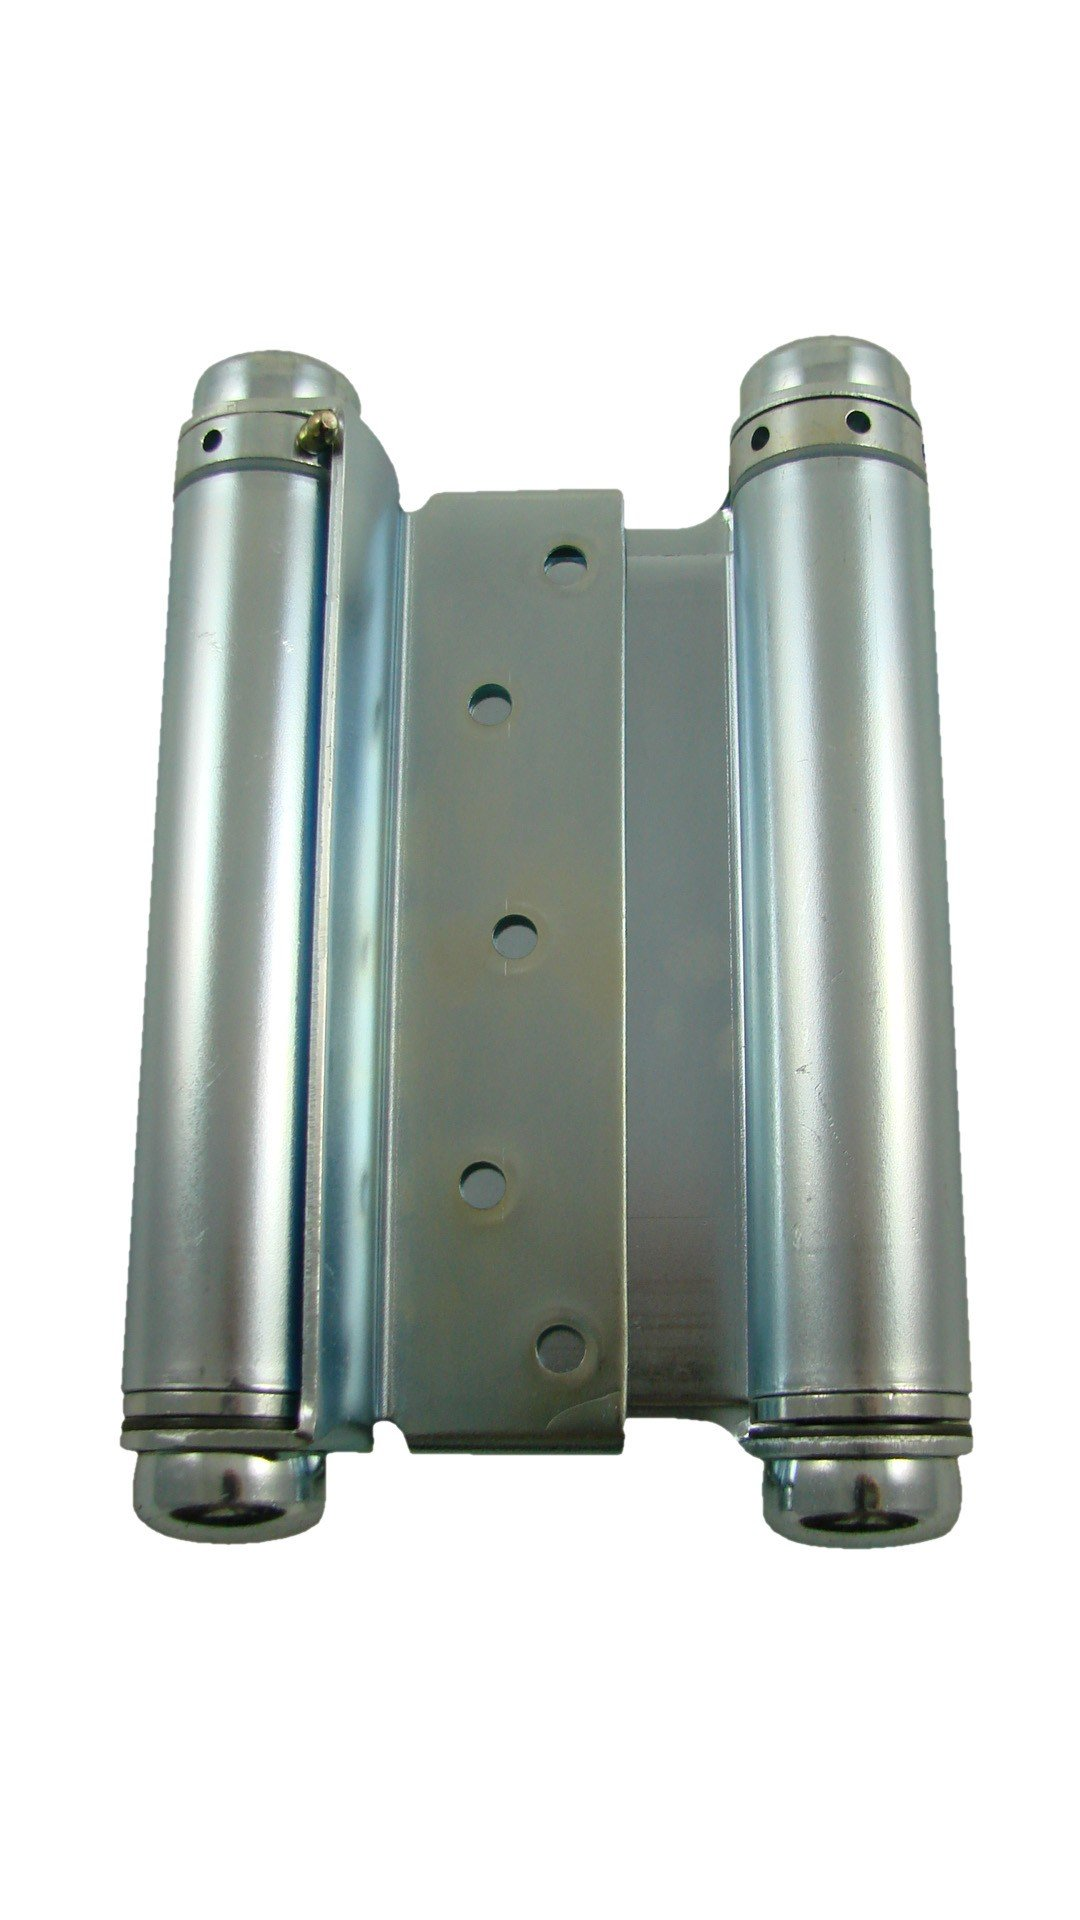 6 Inch Double Action Hinge - Zinc - Highly Rust Resistant